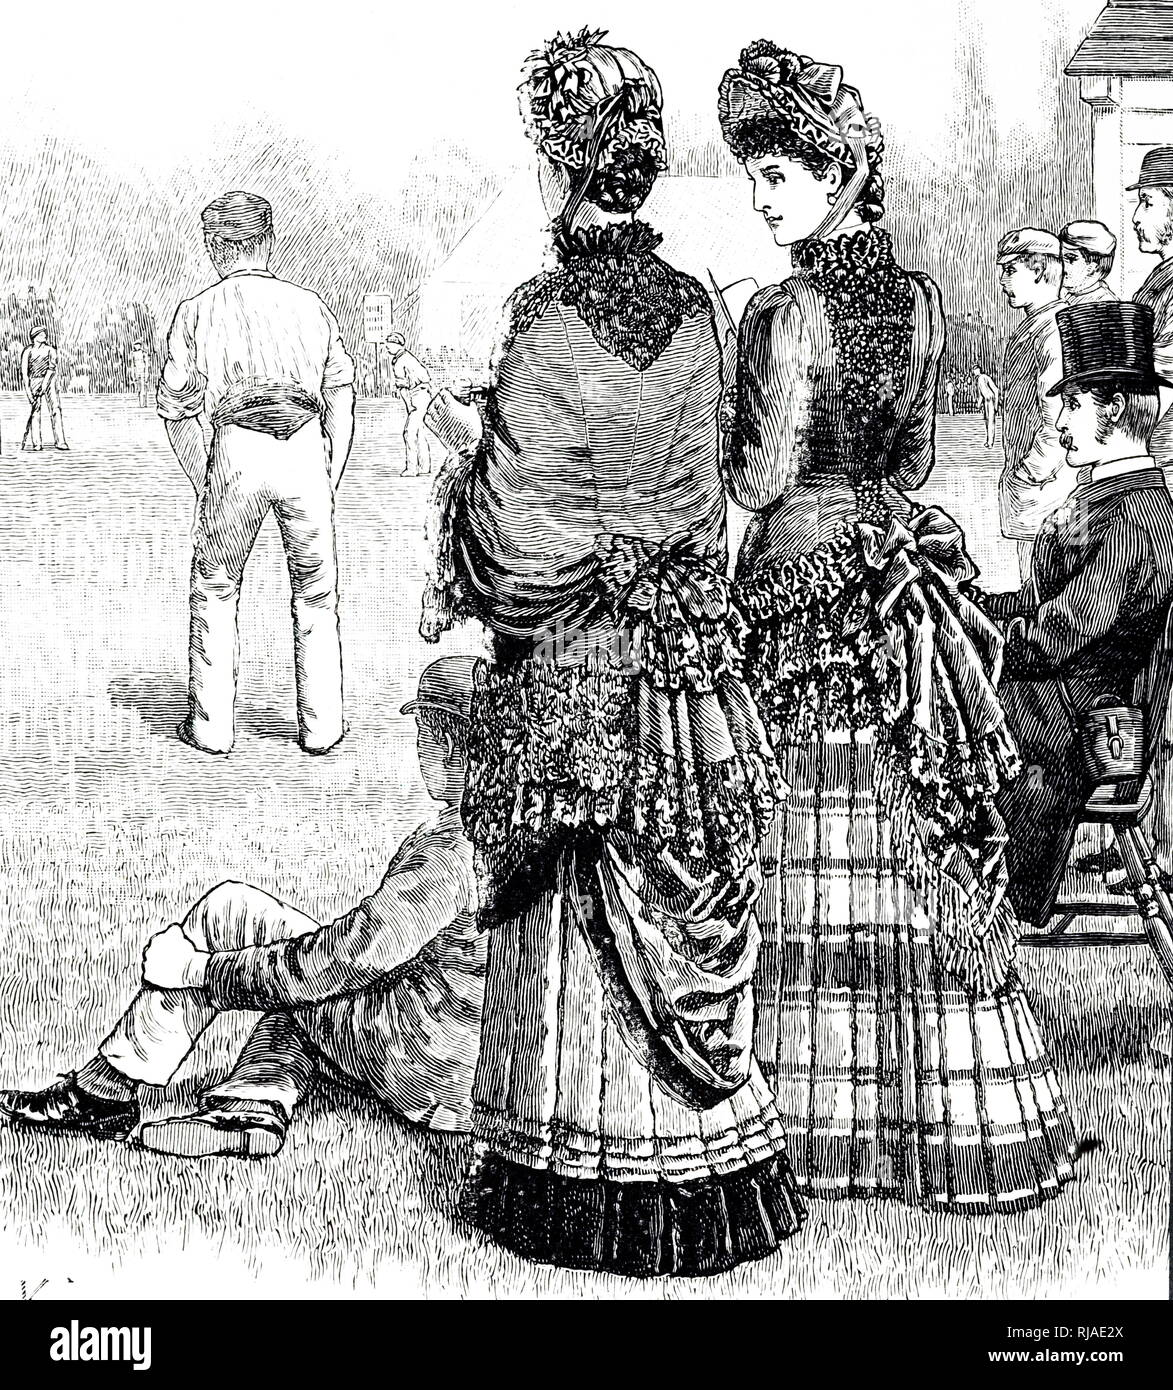 Illustration depicting a 19th-century cricket match with women watching - Stock Image